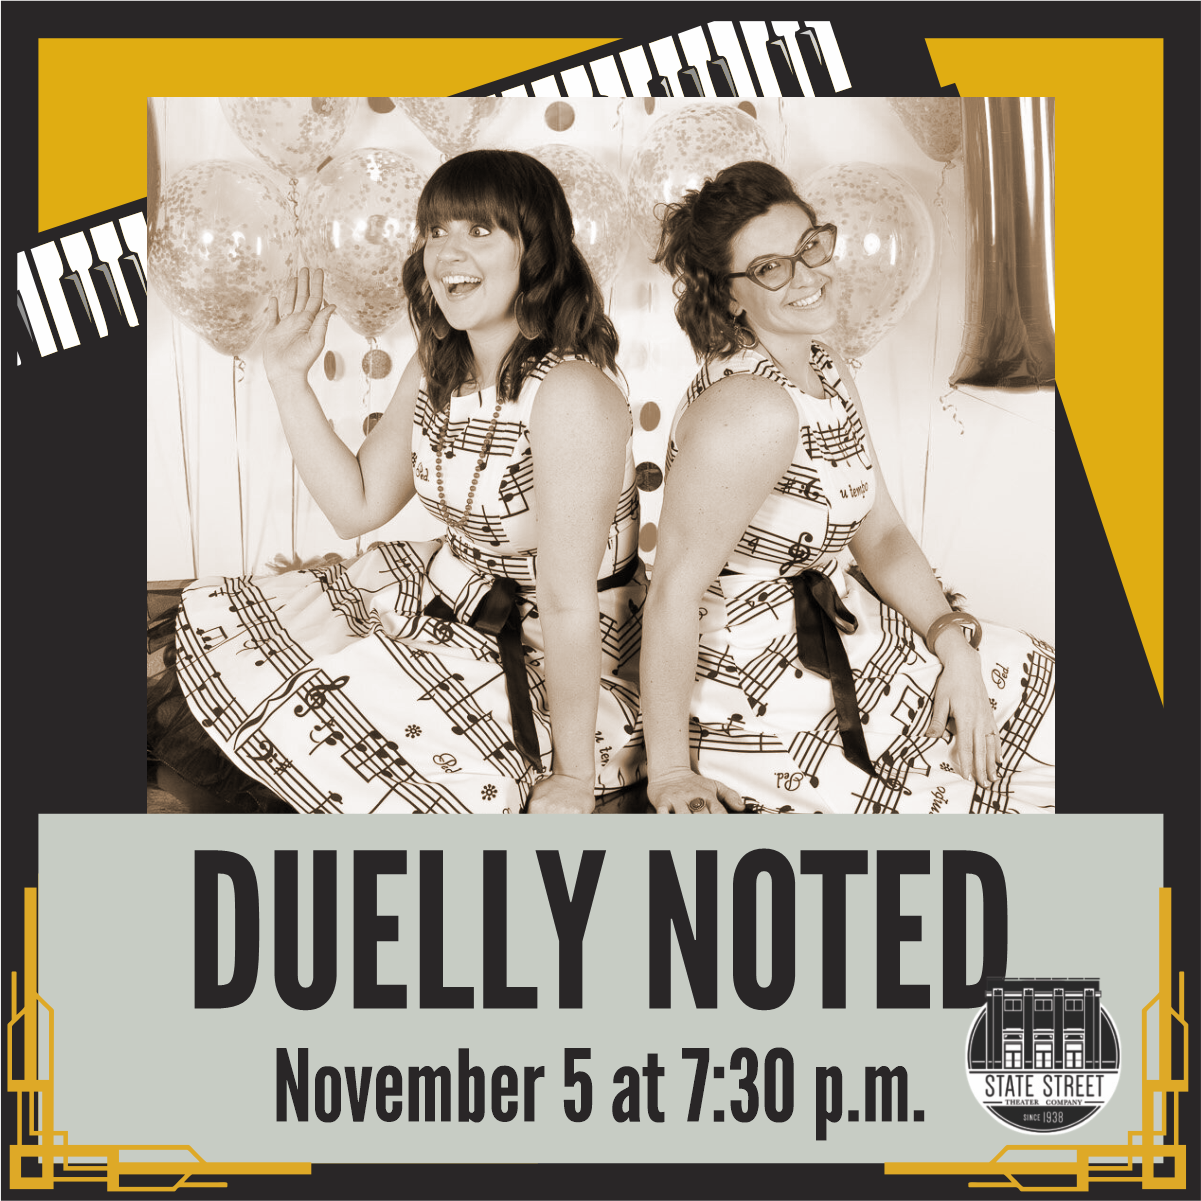 Duelly Noted Dueling Pianos, Friday, November 5 at 7:30 pm at State Street Theater